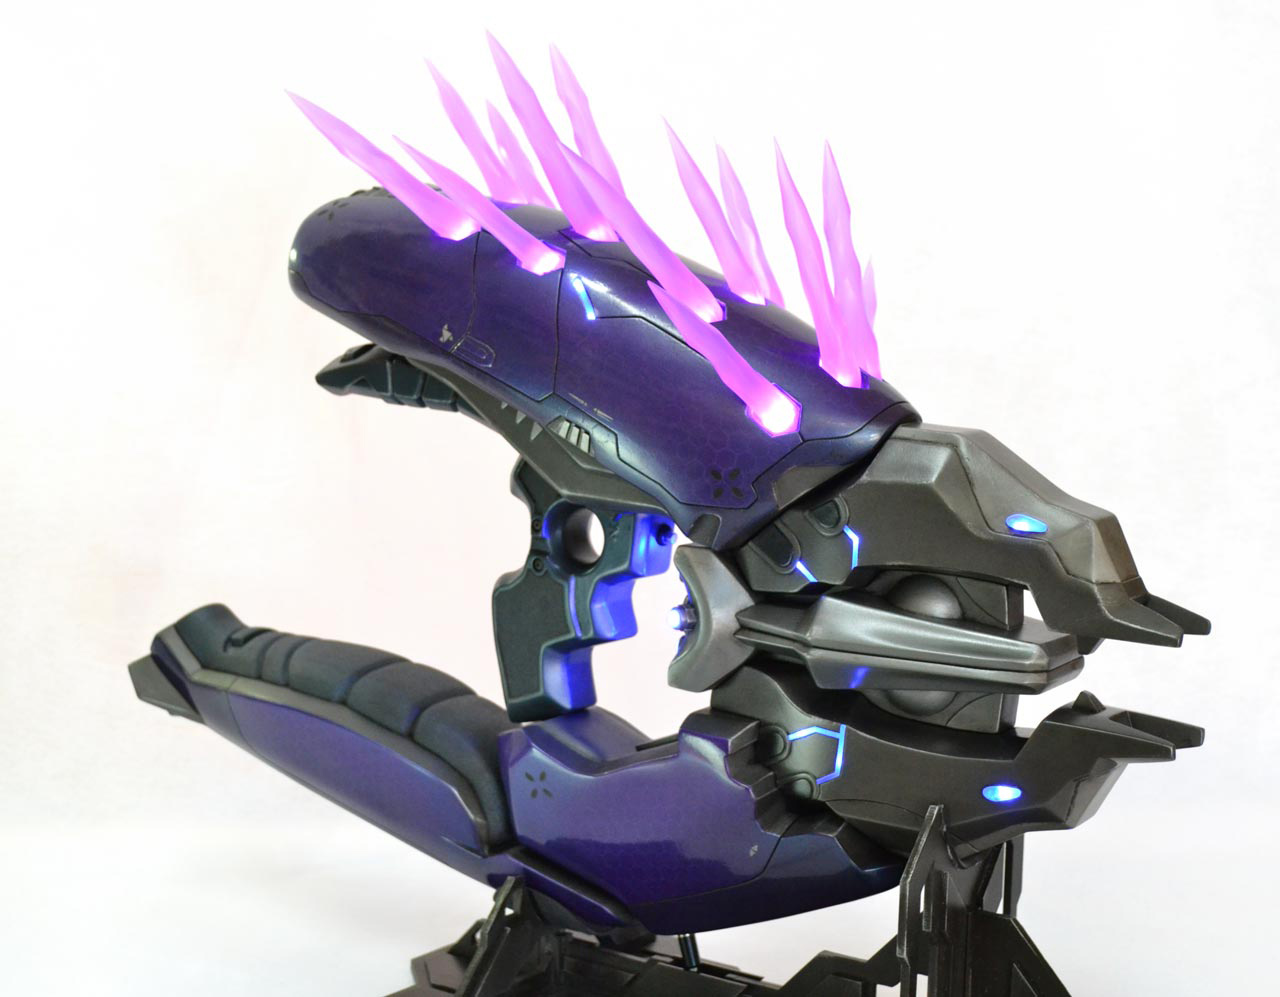 The Needler